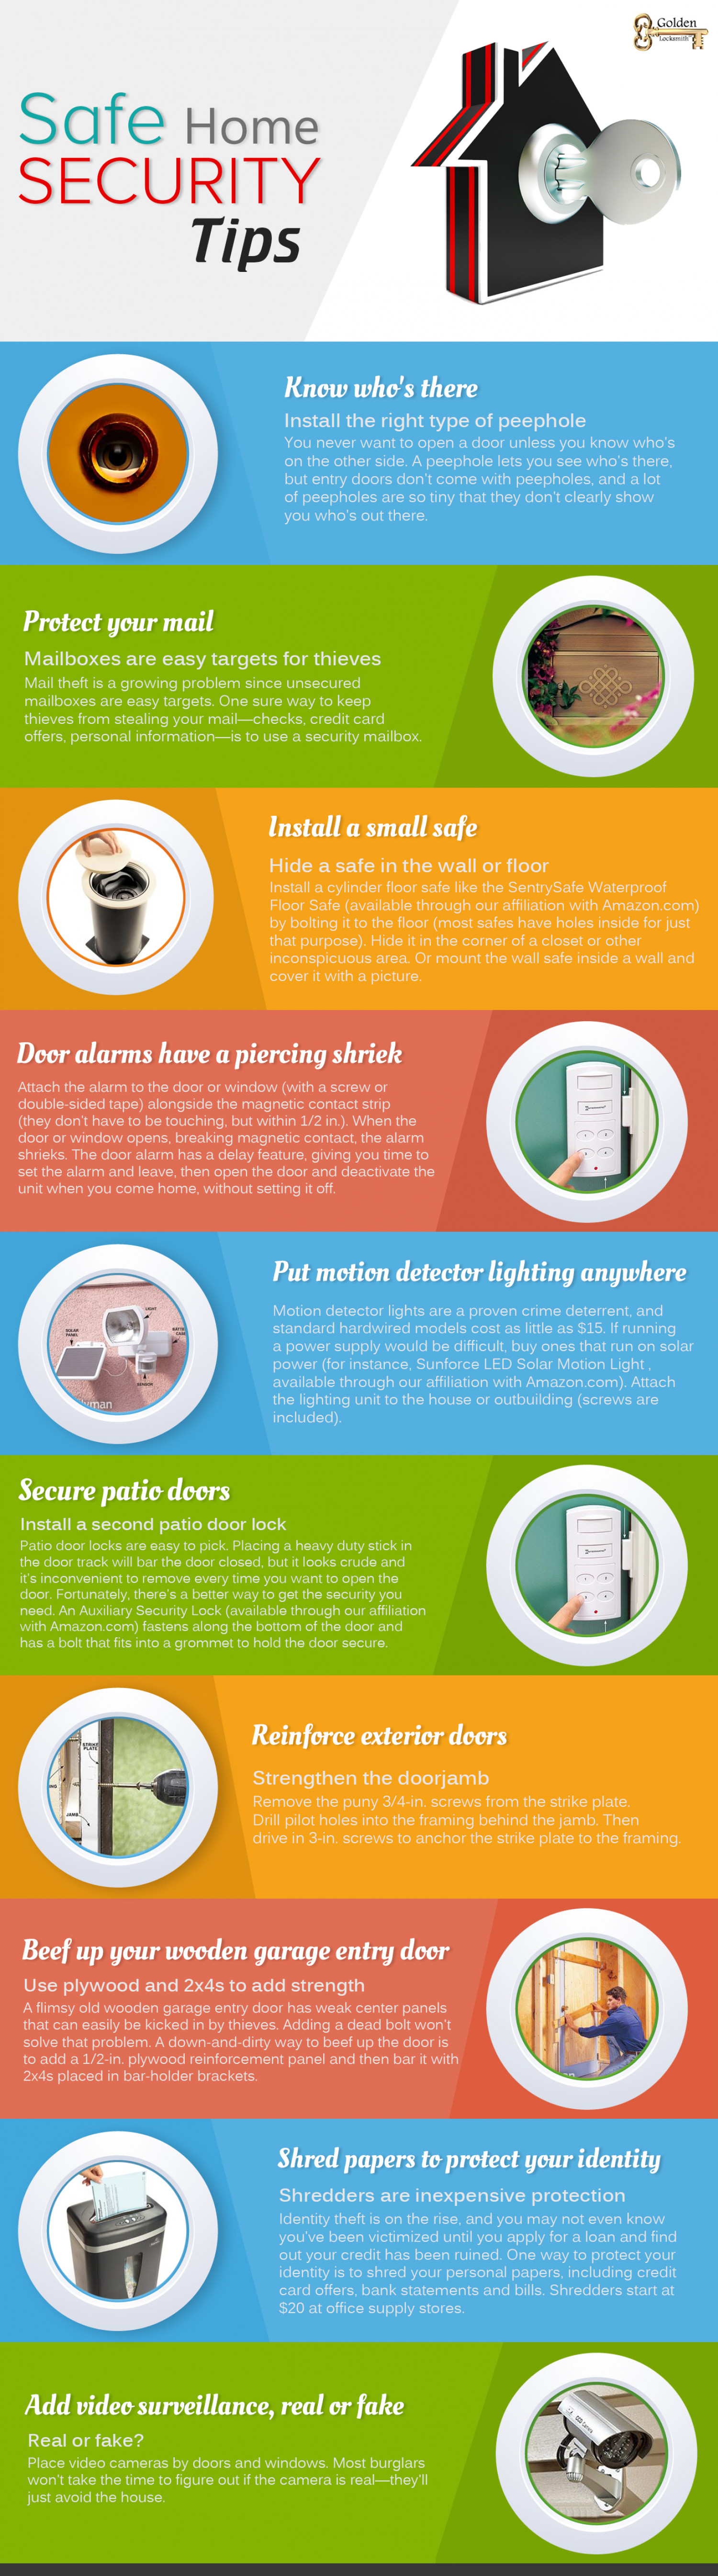 10 Security Tips To Keep Your Home Safe Infographic